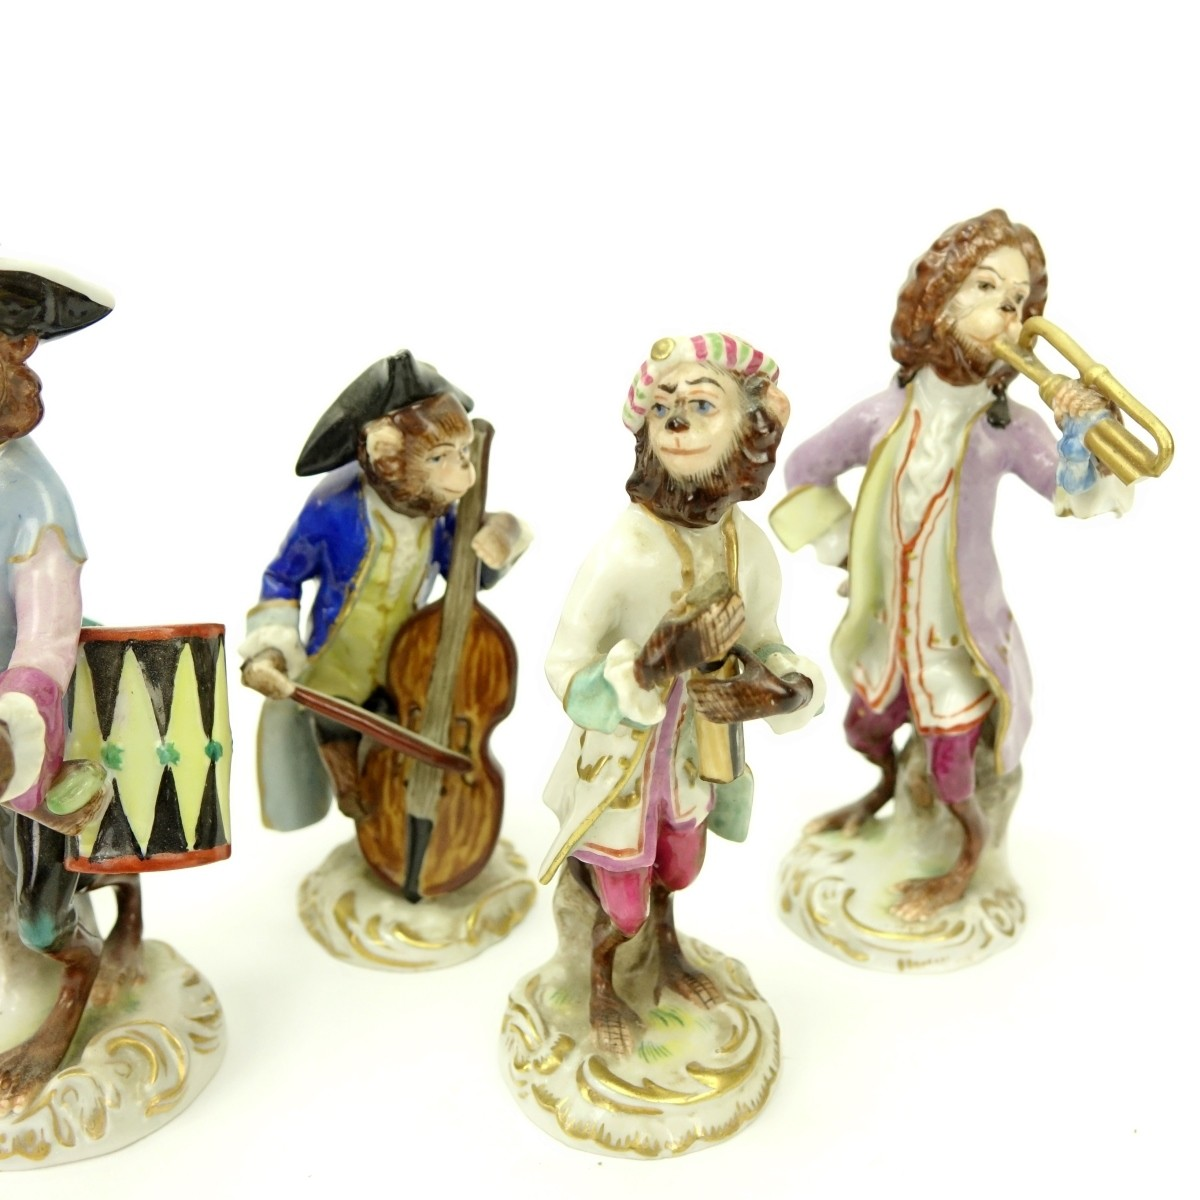 Grouping of Six German and Capodimonte Figurines